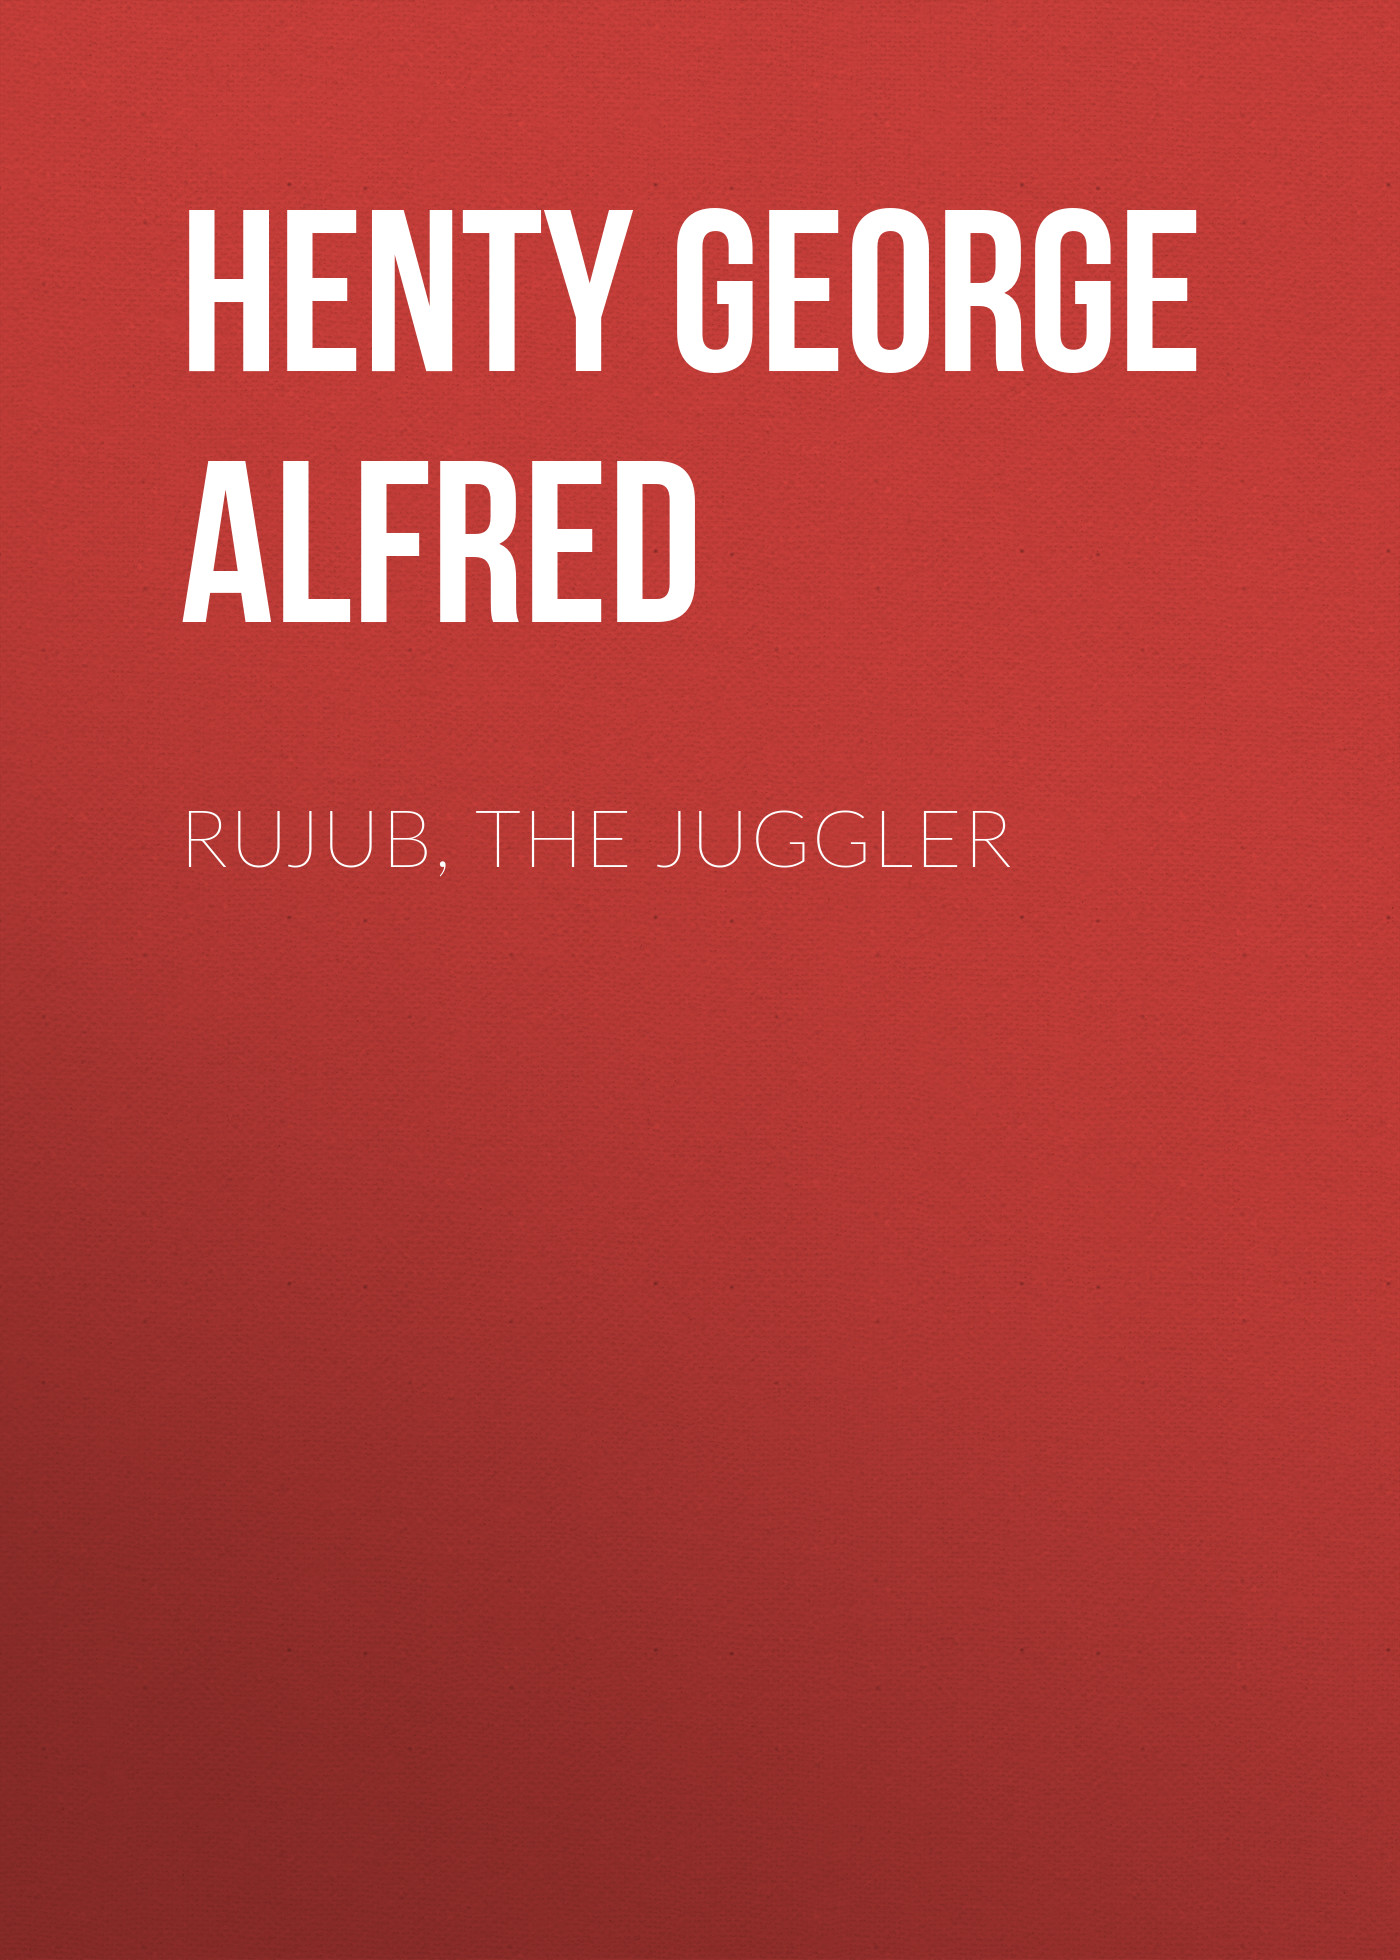 лучшая цена Henty George Alfred Rujub, the Juggler